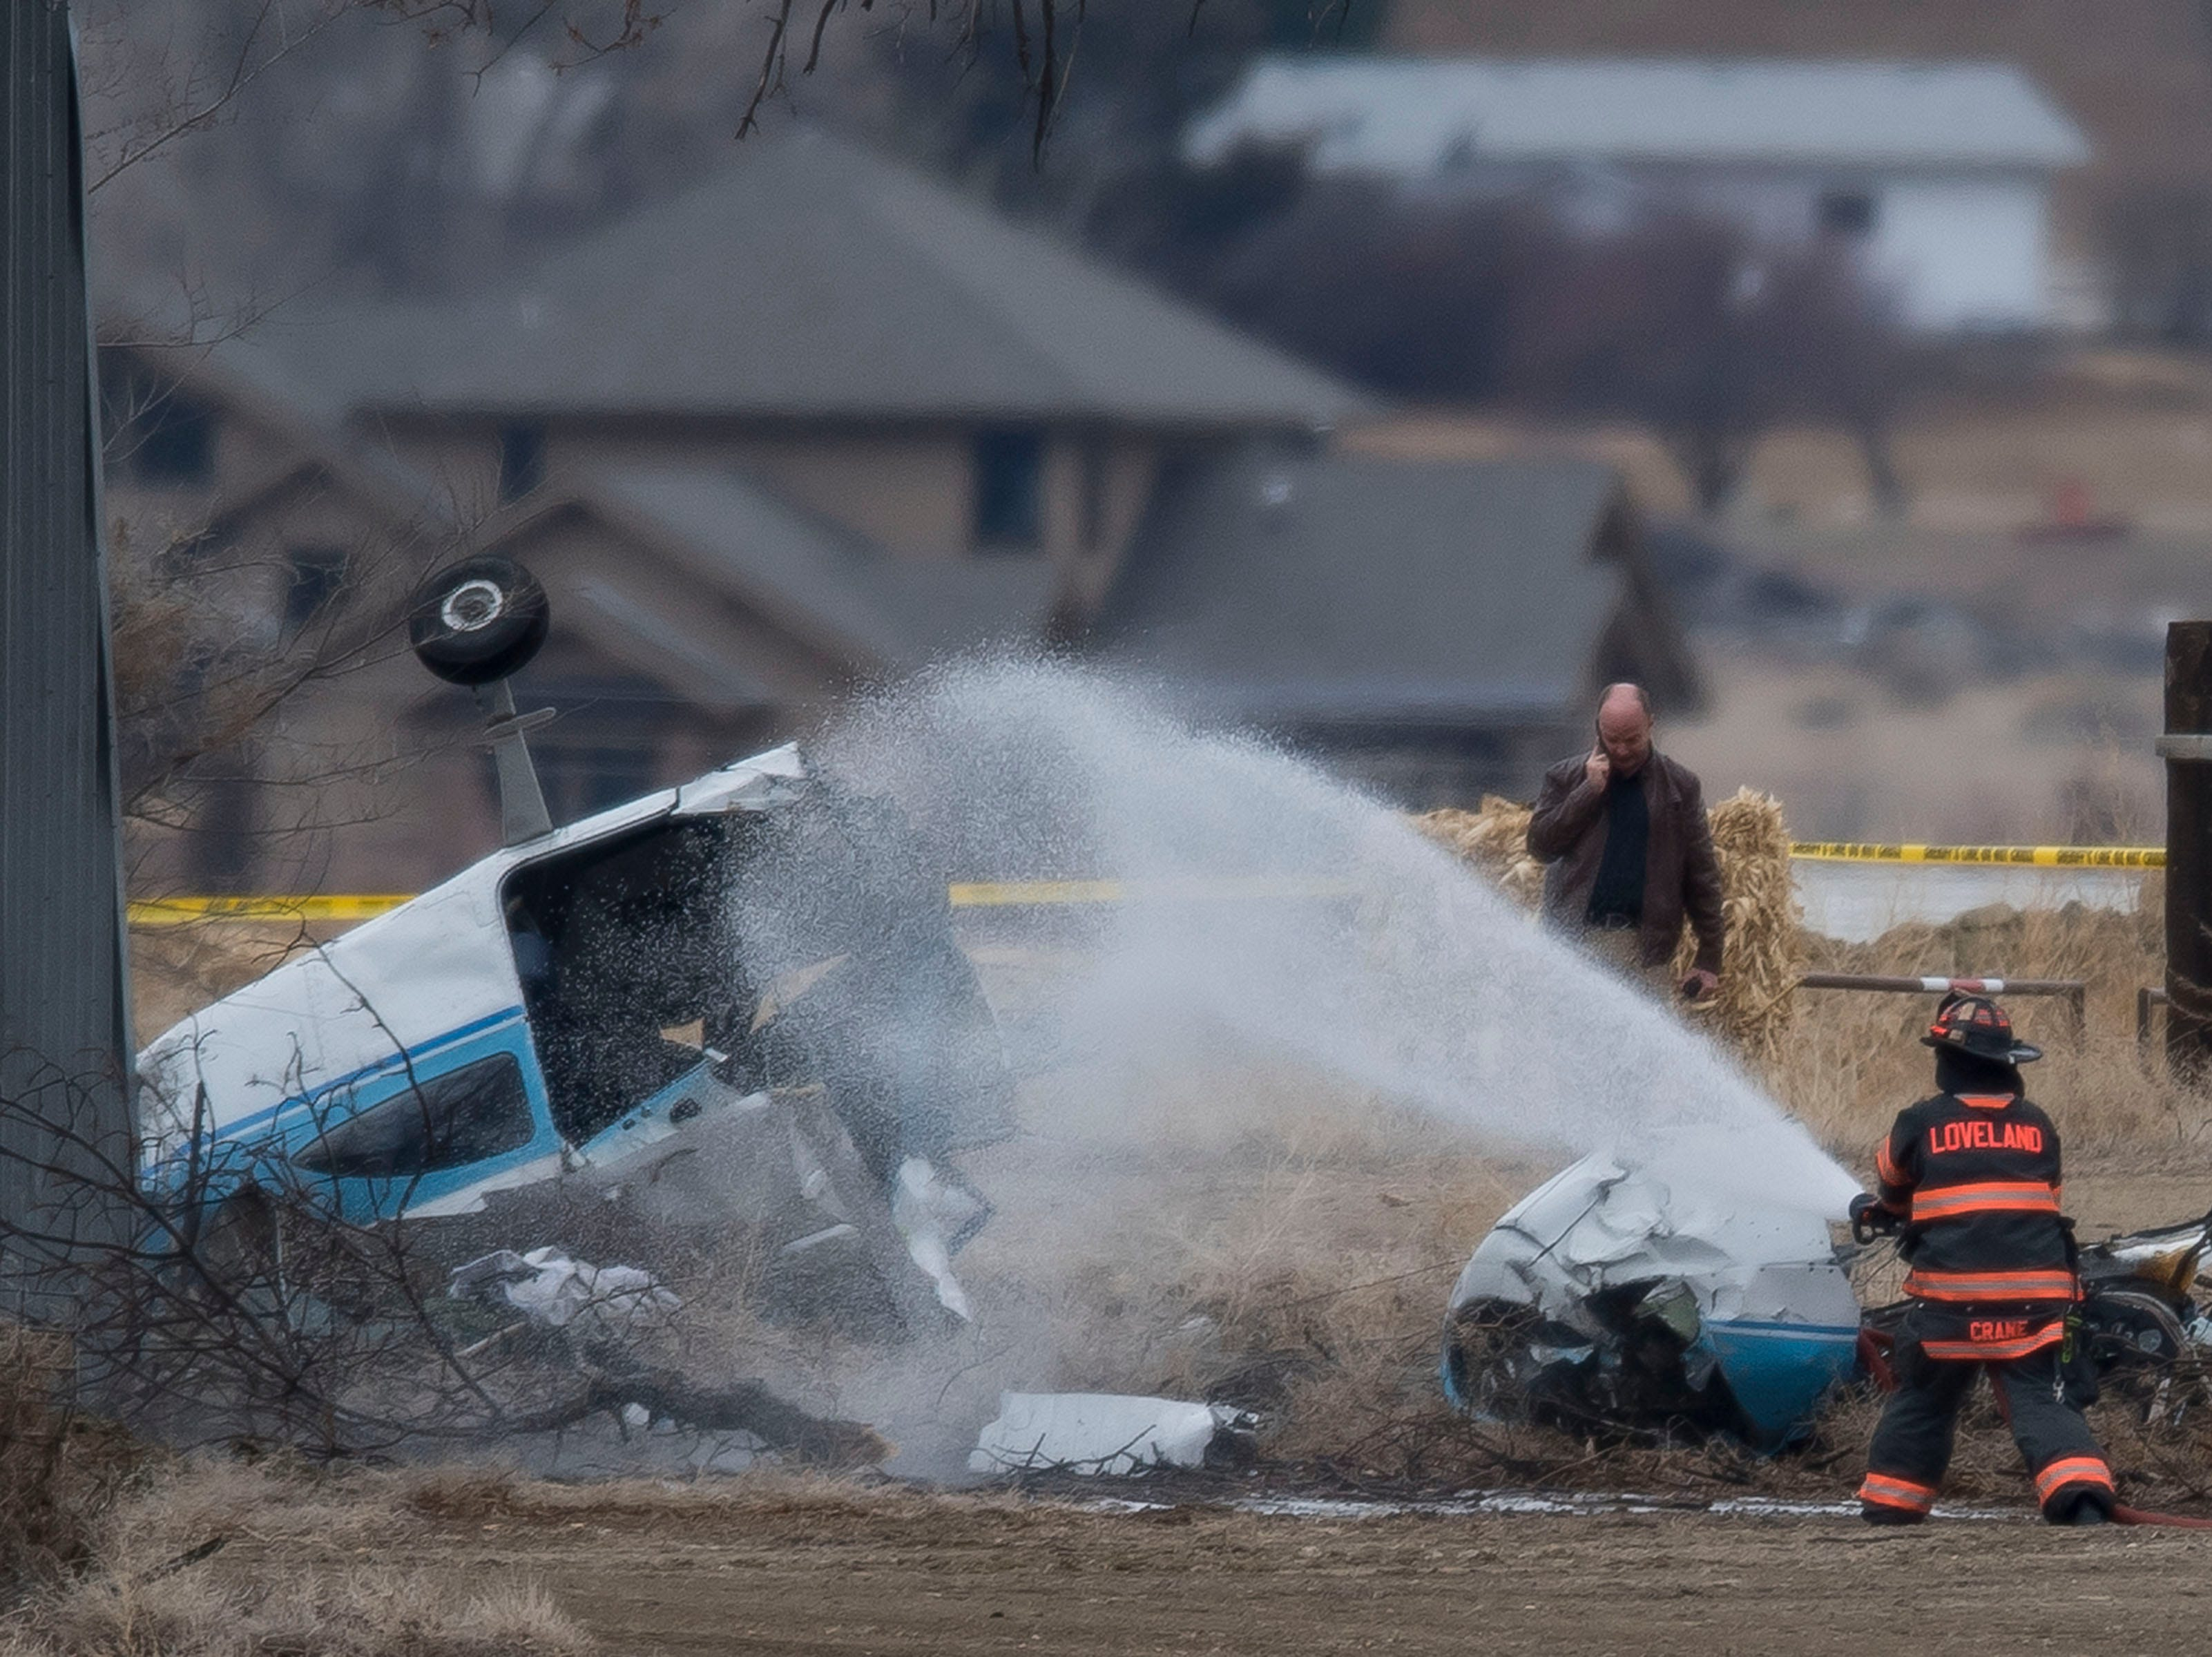 A Loveland firefighter sprays down the fuselage of a small plane that crashed near a dairy farm Saturday, March 23, 2019, injuring three people on board. The crash happened west of the intersection of East County Road 30 and Boyd Lake Avenue in Fort Collins, Colo., just west of the Northern Colorado Regional Airport.